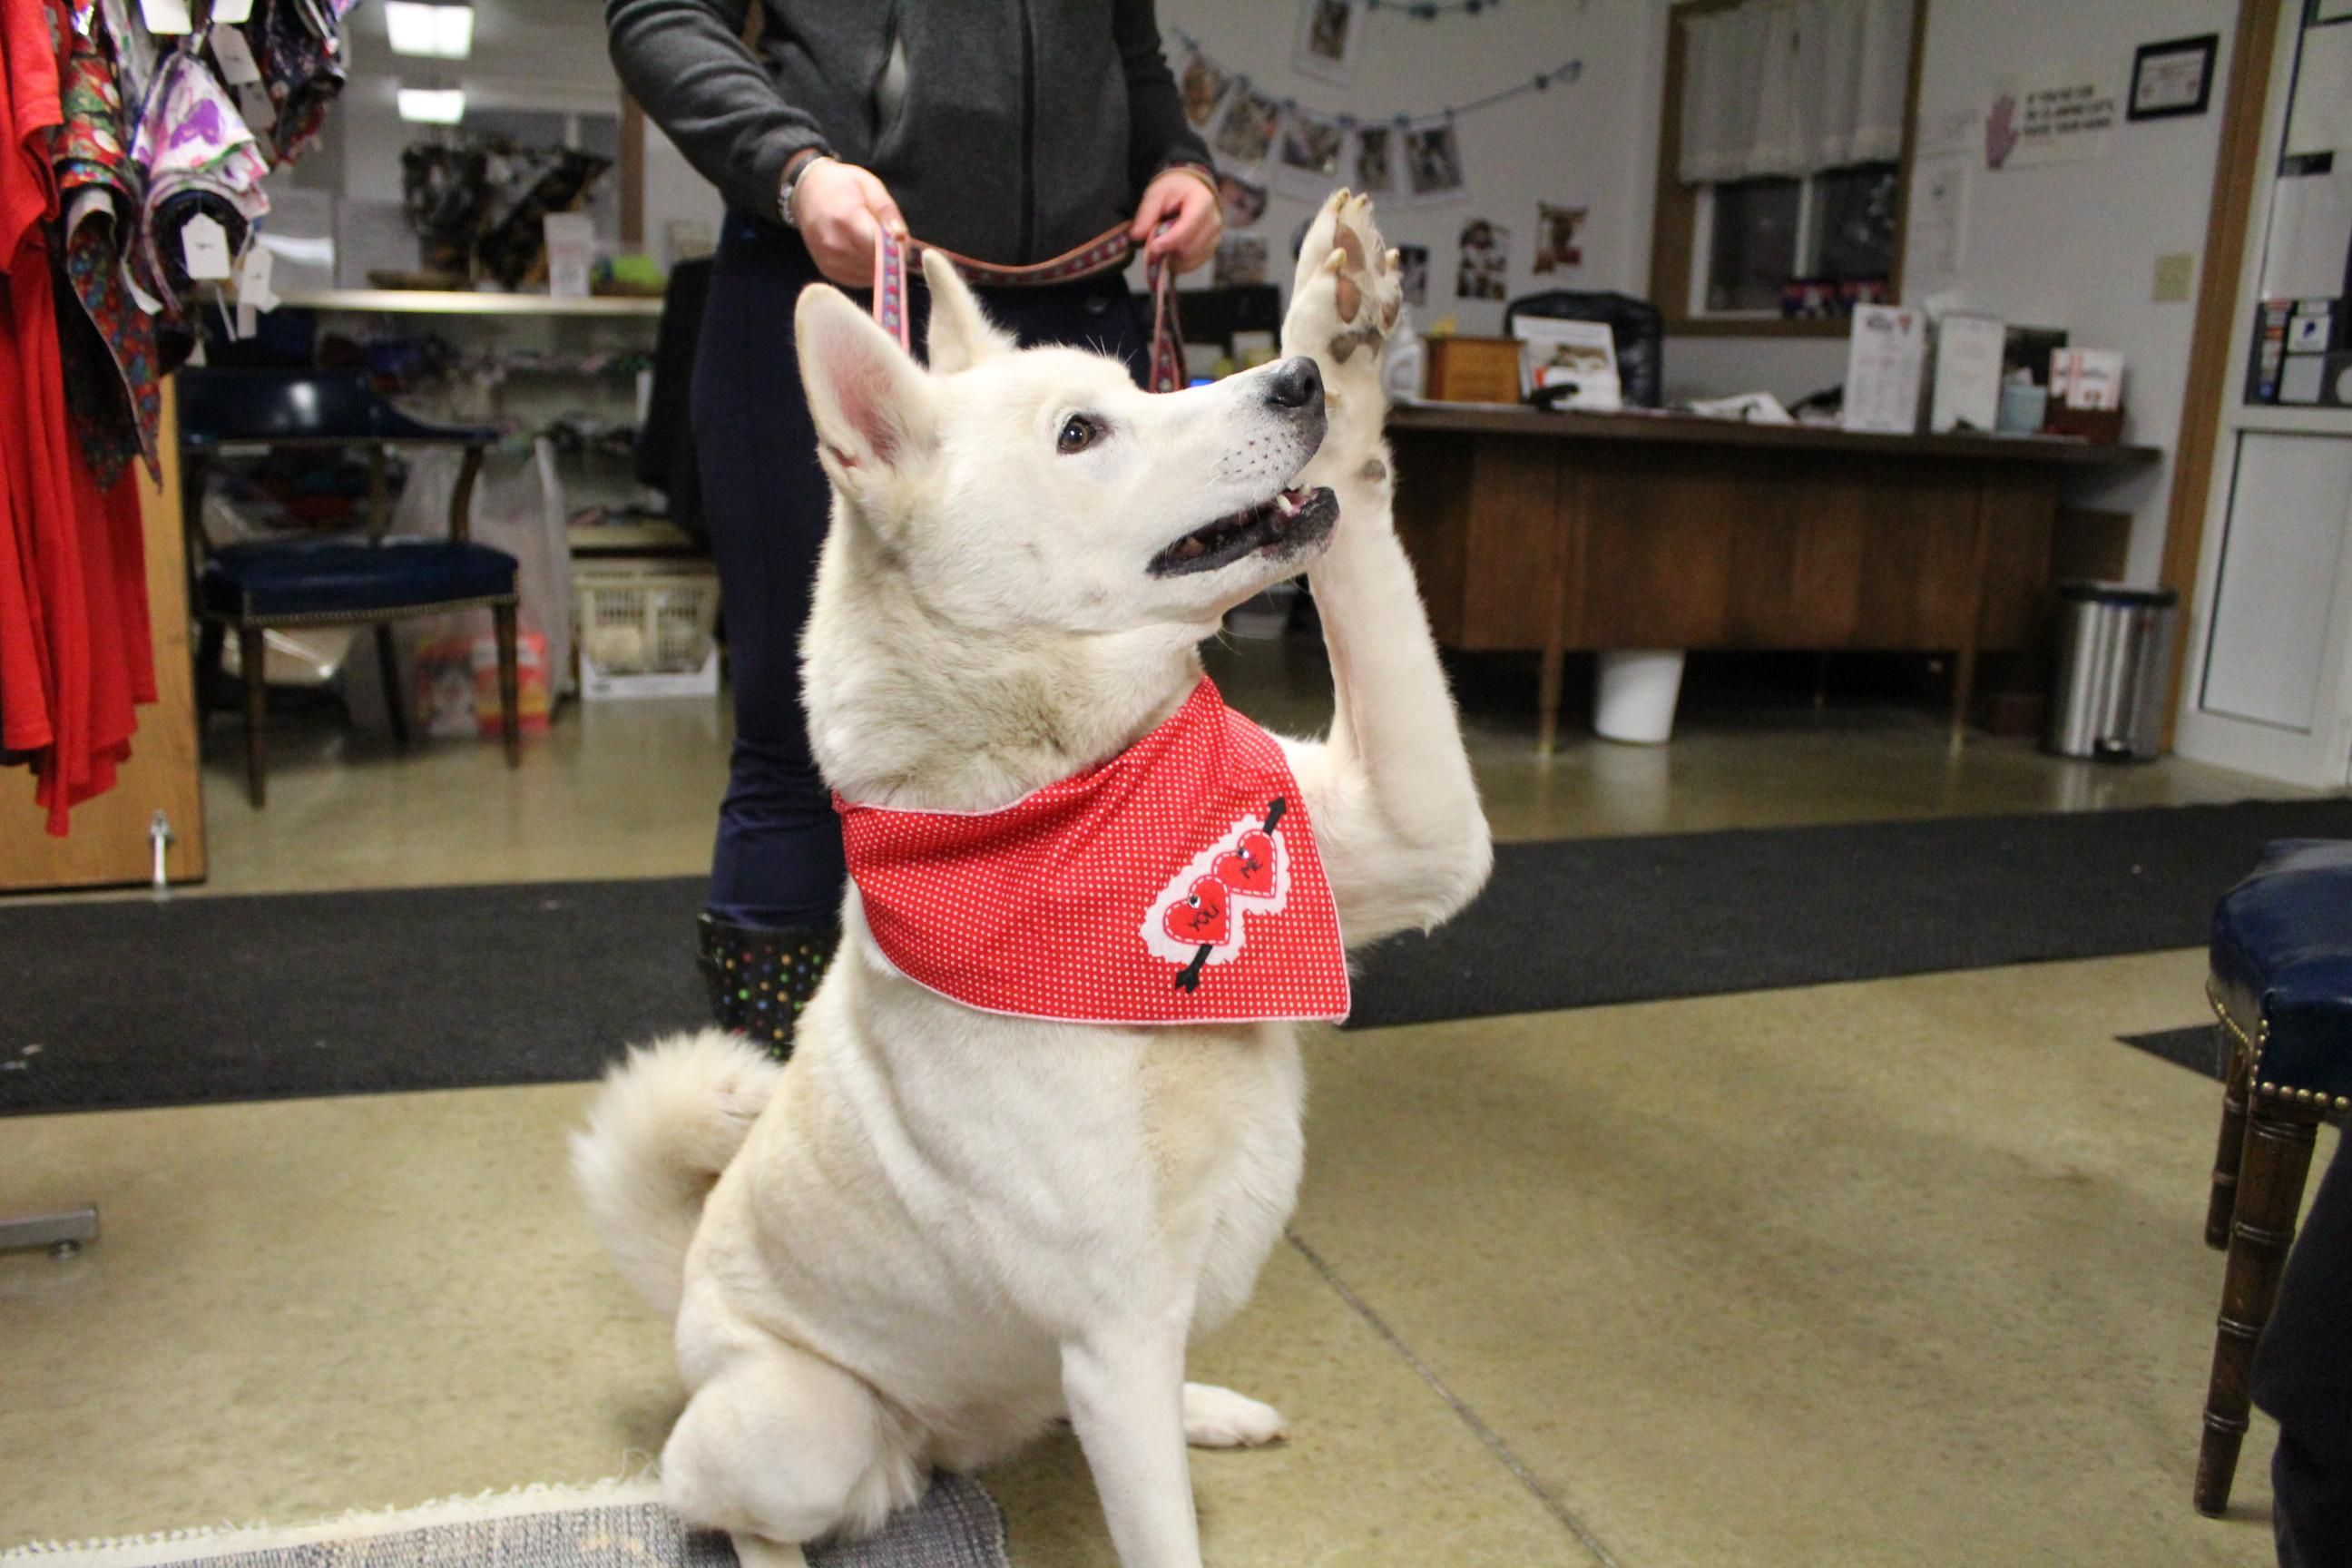 Meet DIAMOND, an adoptable Siberian Husky looking for a forever home. If you're looking for a new pet to adopt or want information on how to get involved with adoptable pets, Petfinder.com is a great resource.